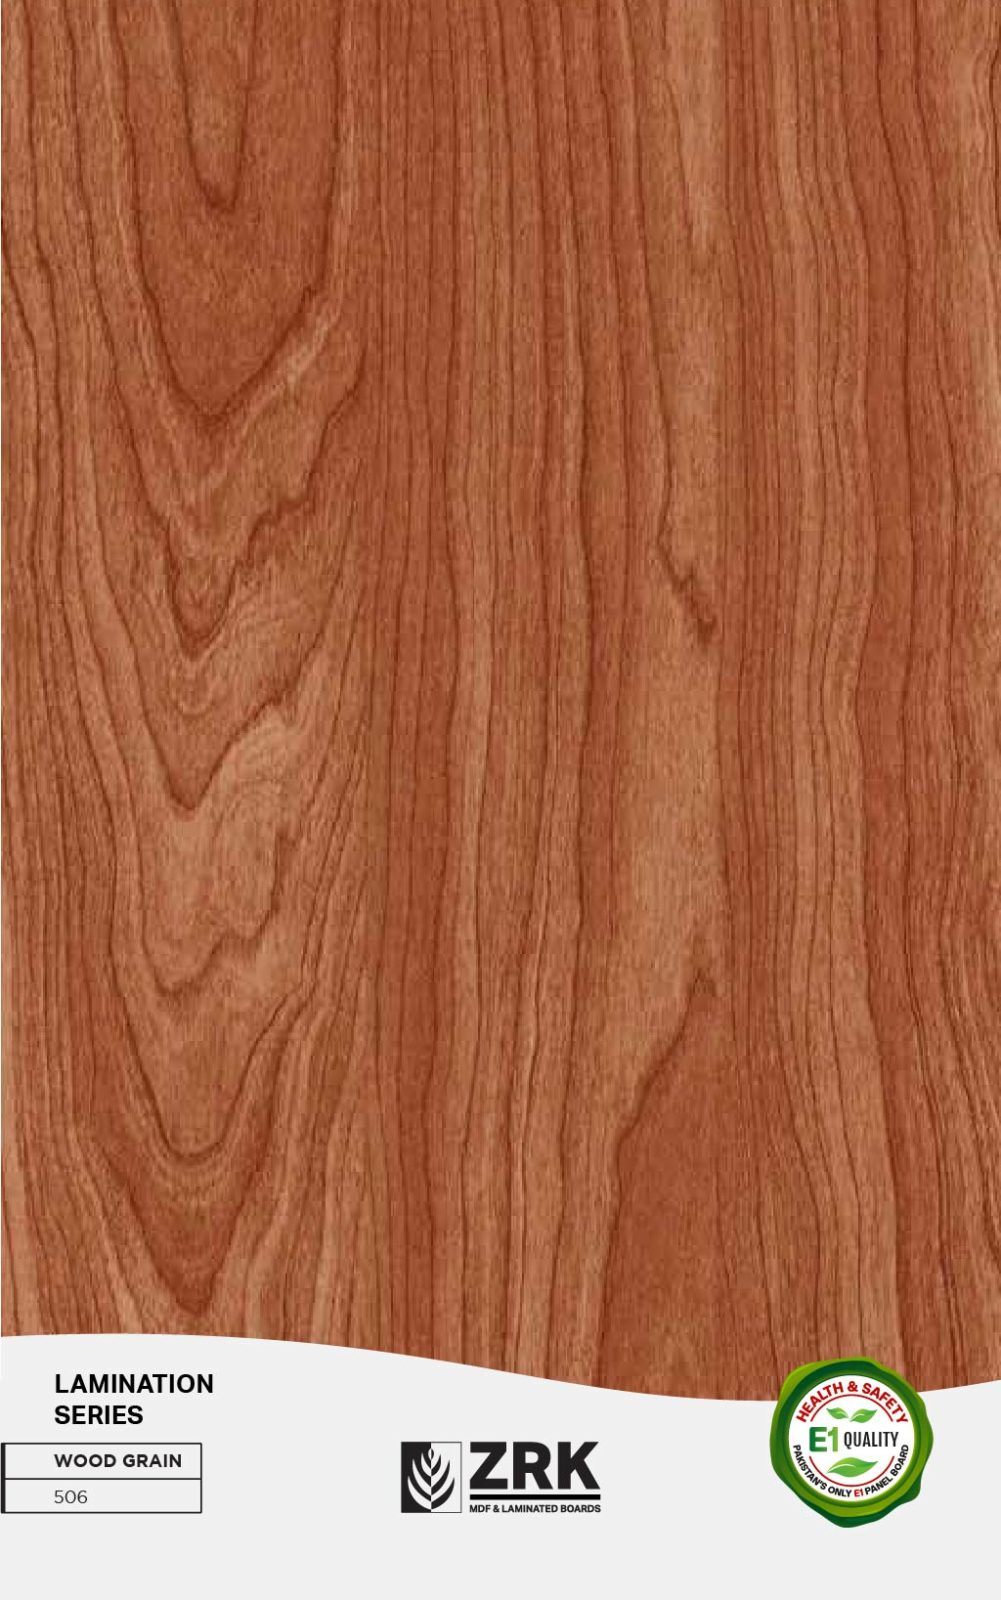 Lamination - Wood Grain - 506